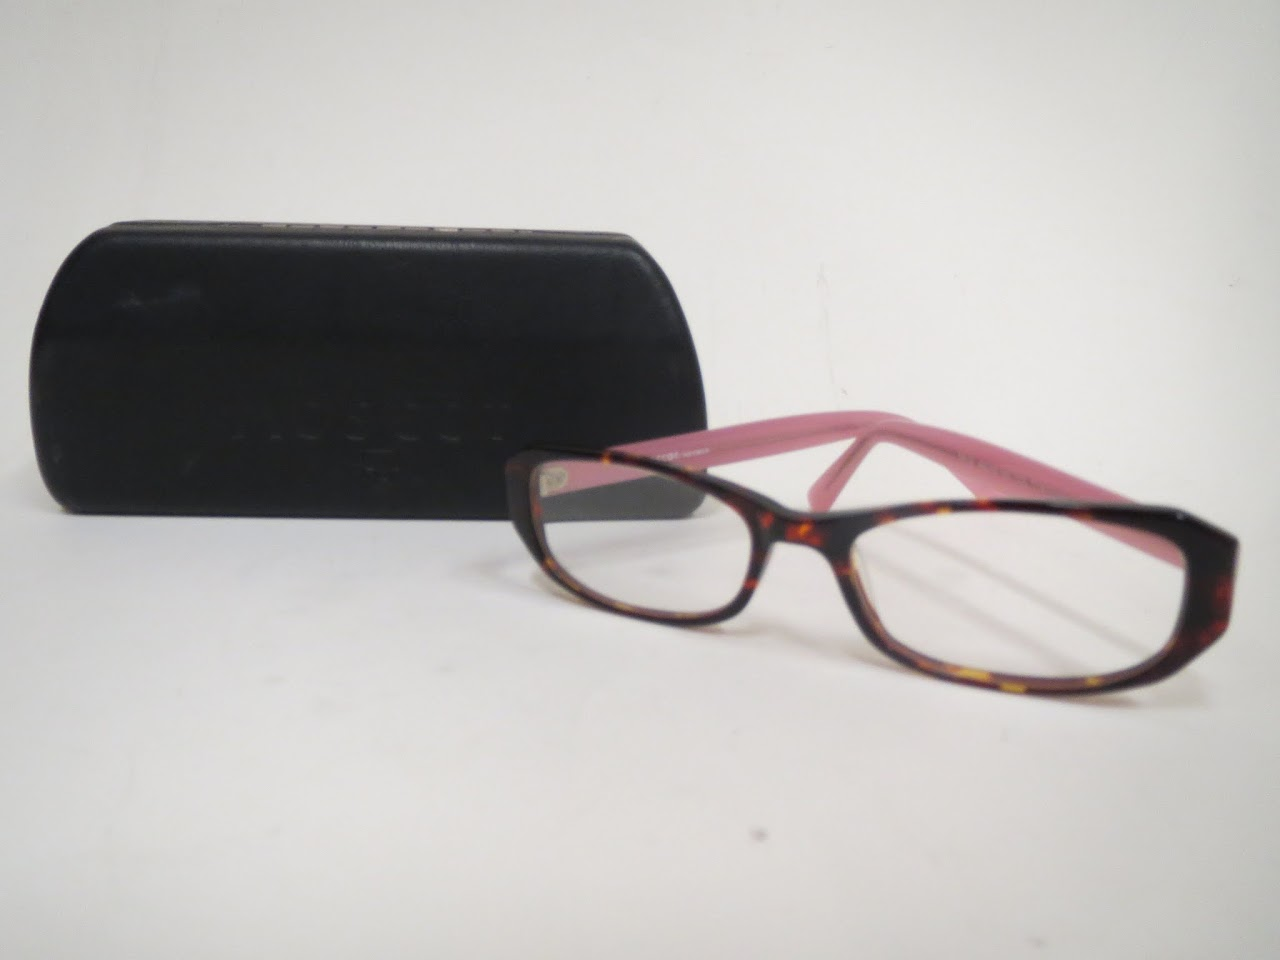 Moscot Pink and Tortoiseshell Readers